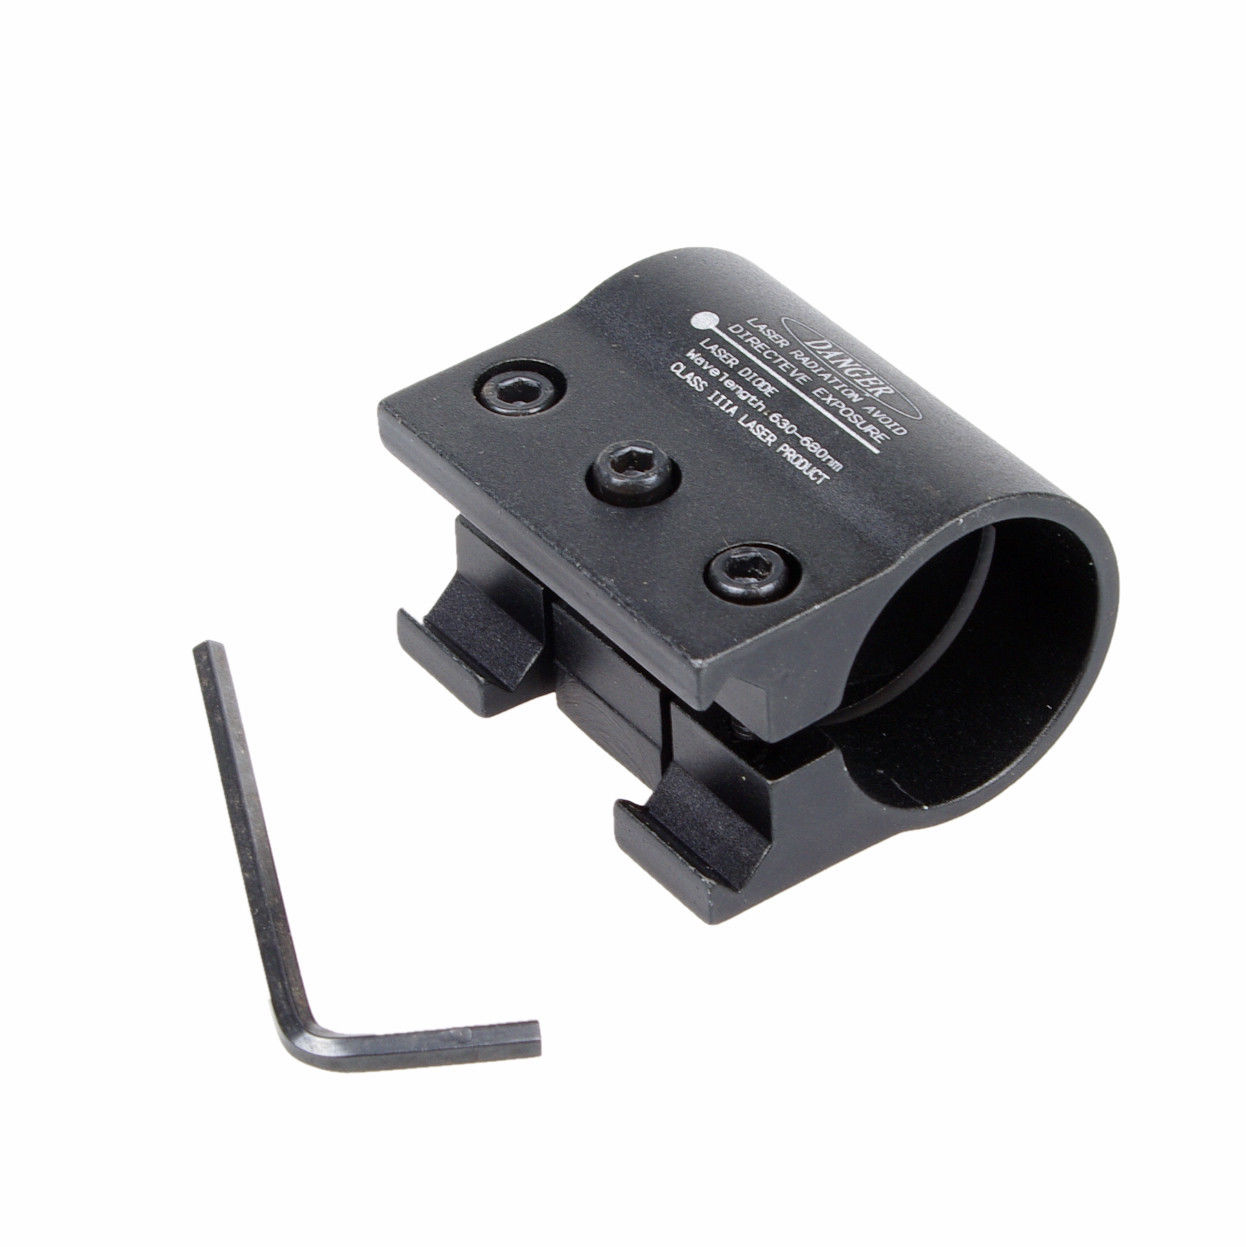 Tactical Rifle 1 inch Ring Hole 20mm Picatinny Weaver Laser Scope Mount Flashlight